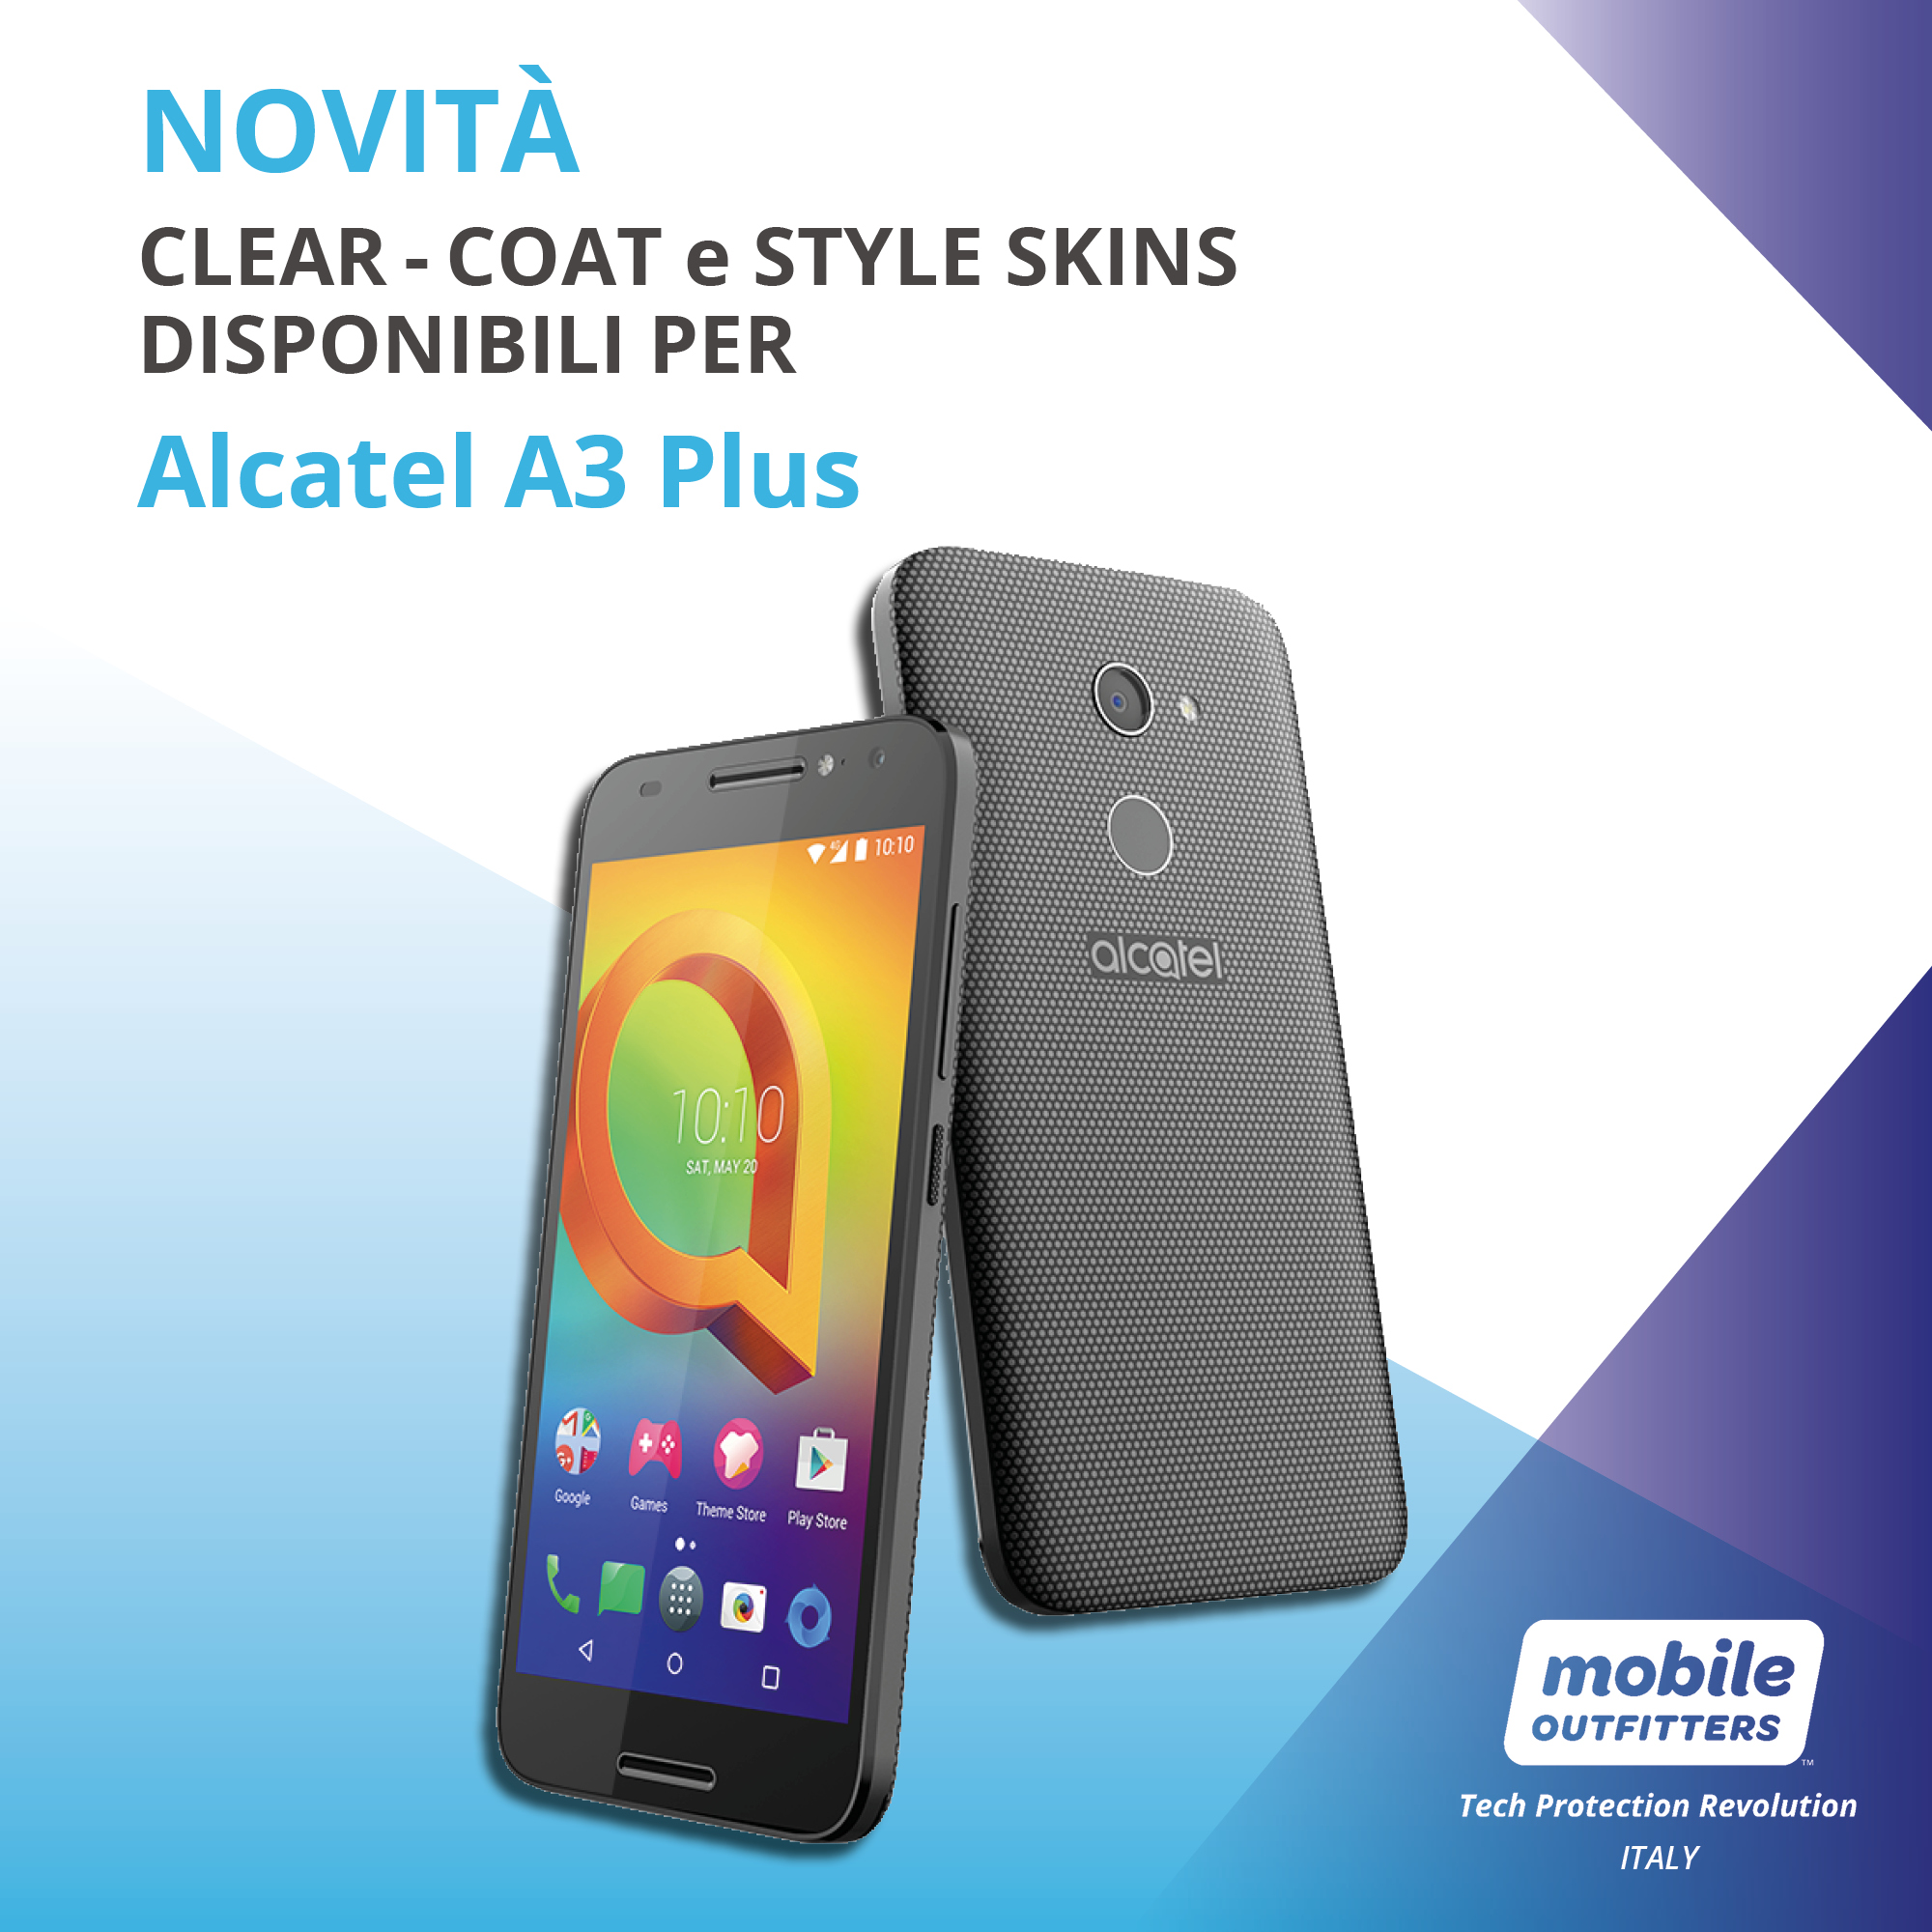 07_06_MOBILE OUTFITTERS_ALCATEL A3 PLIUS